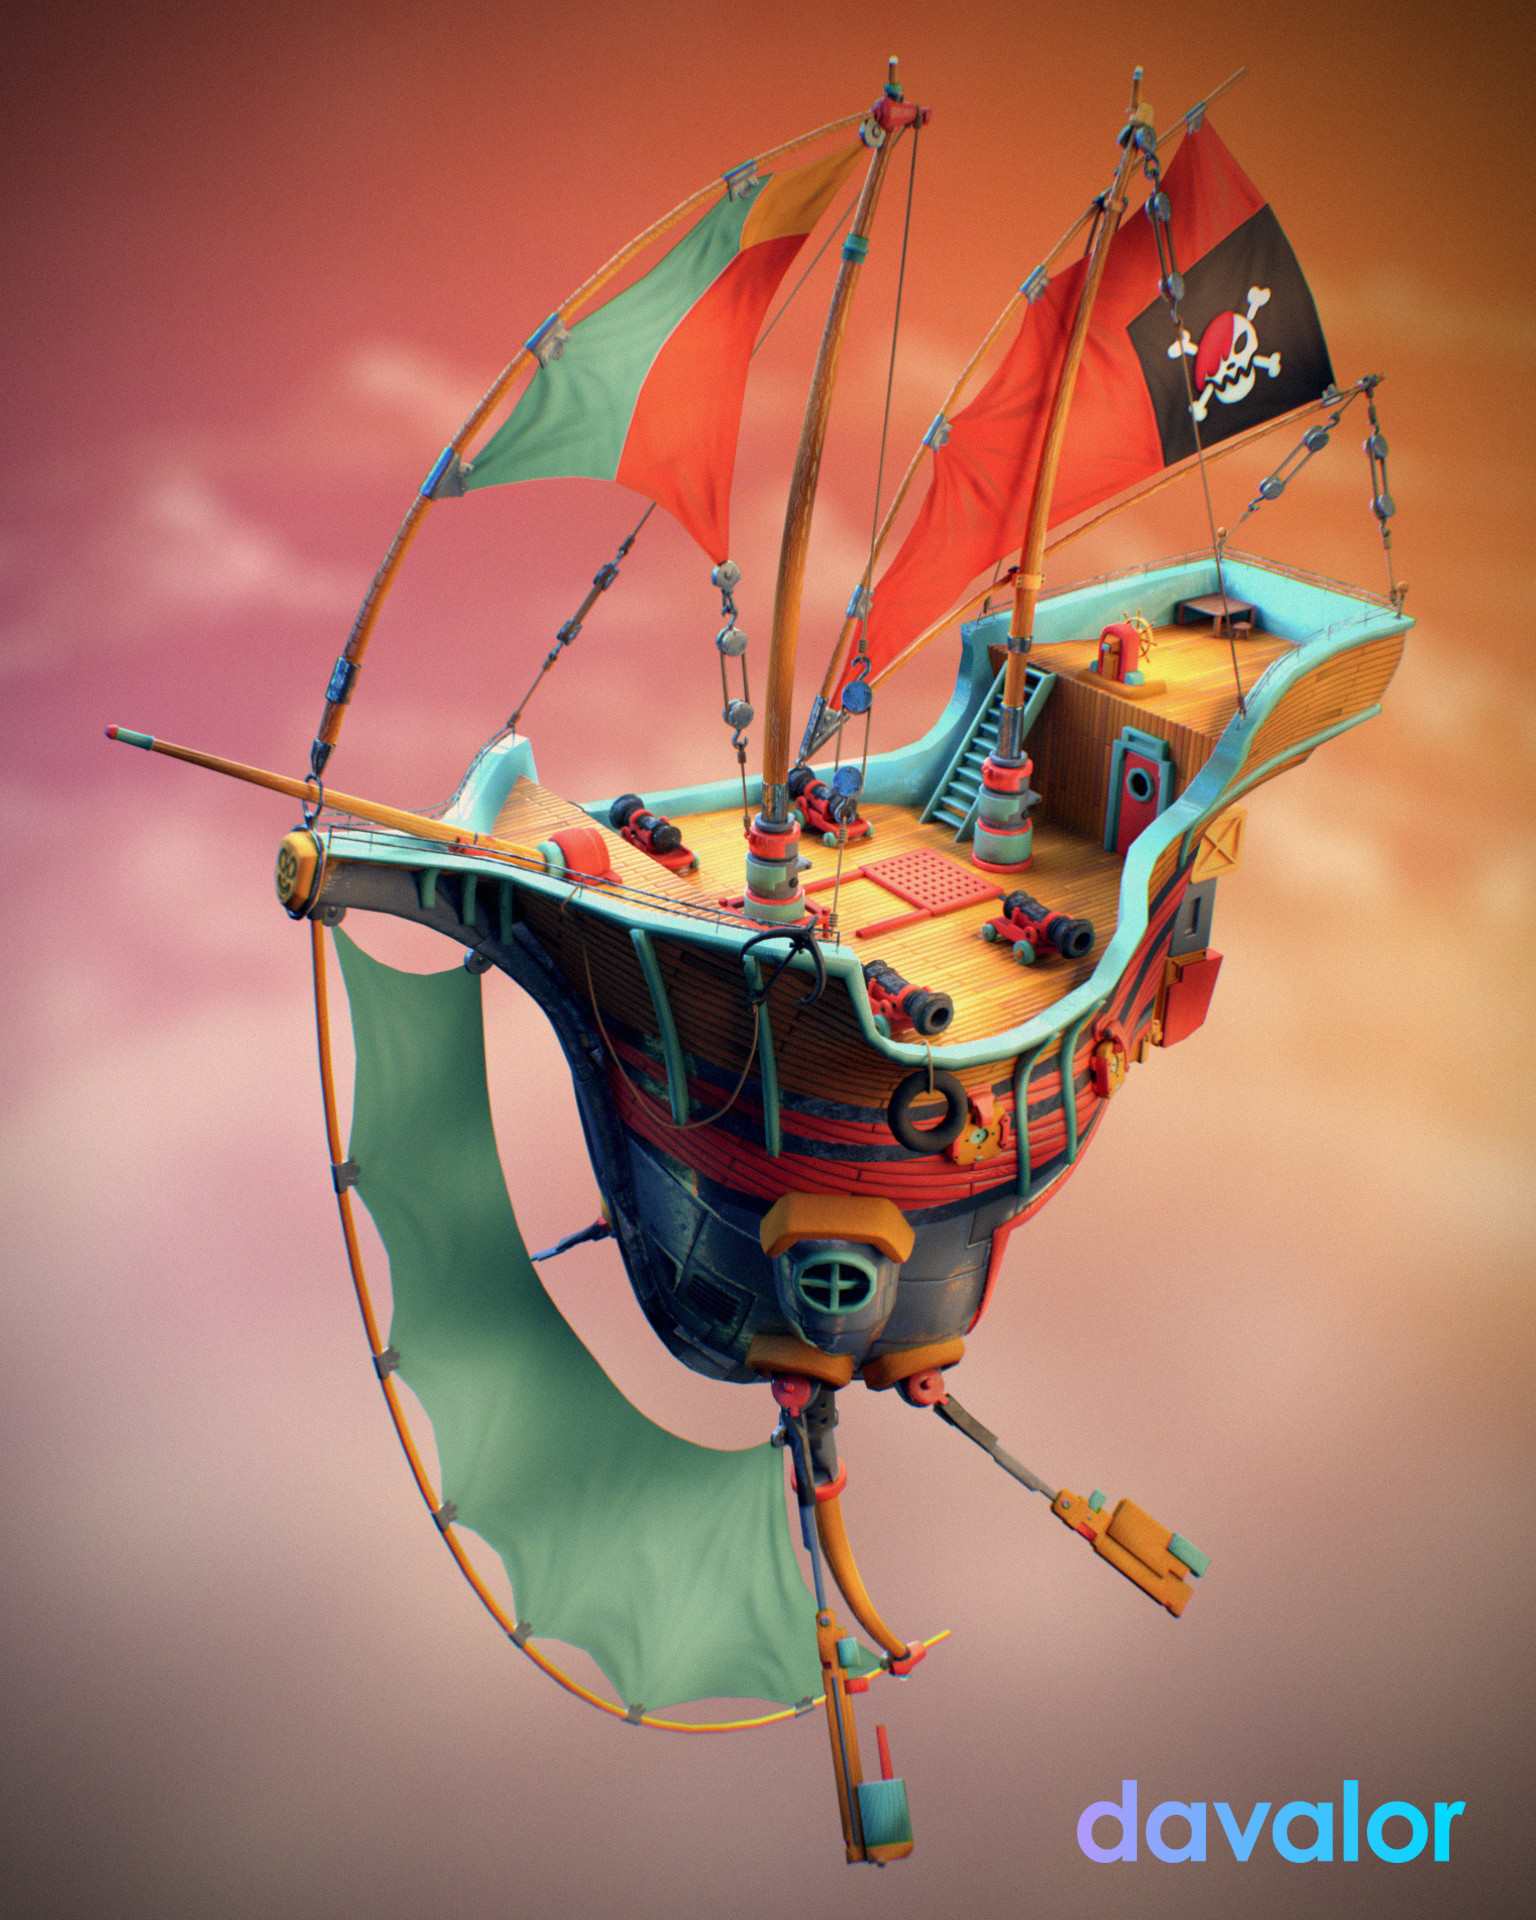 Sendoa bergasa pirate ship 01